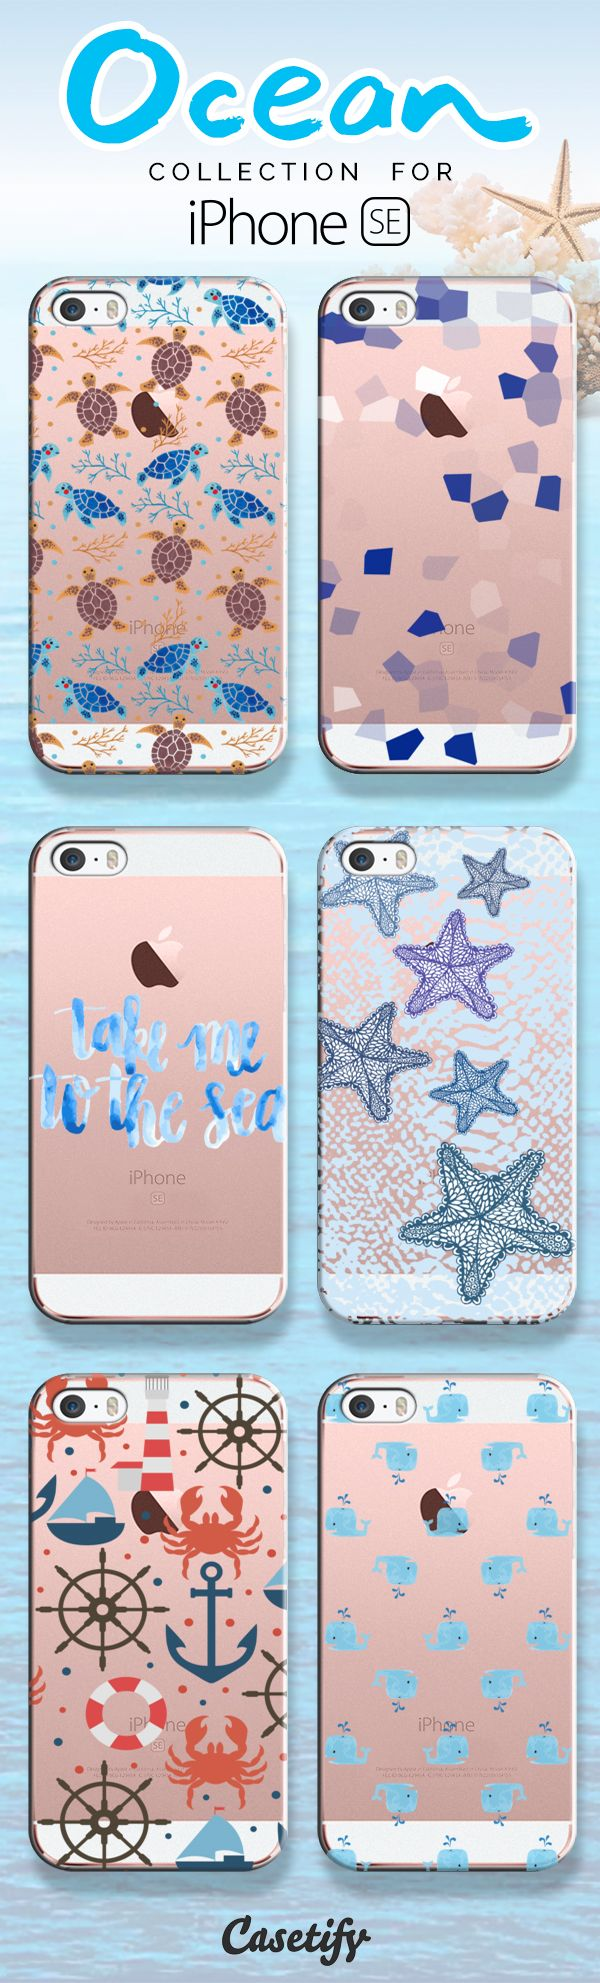 Do whatever floats to your board! Take a look at these ocean inspired cases on our site now! https://www.casetify.com/search?keyword=sea | @casetify